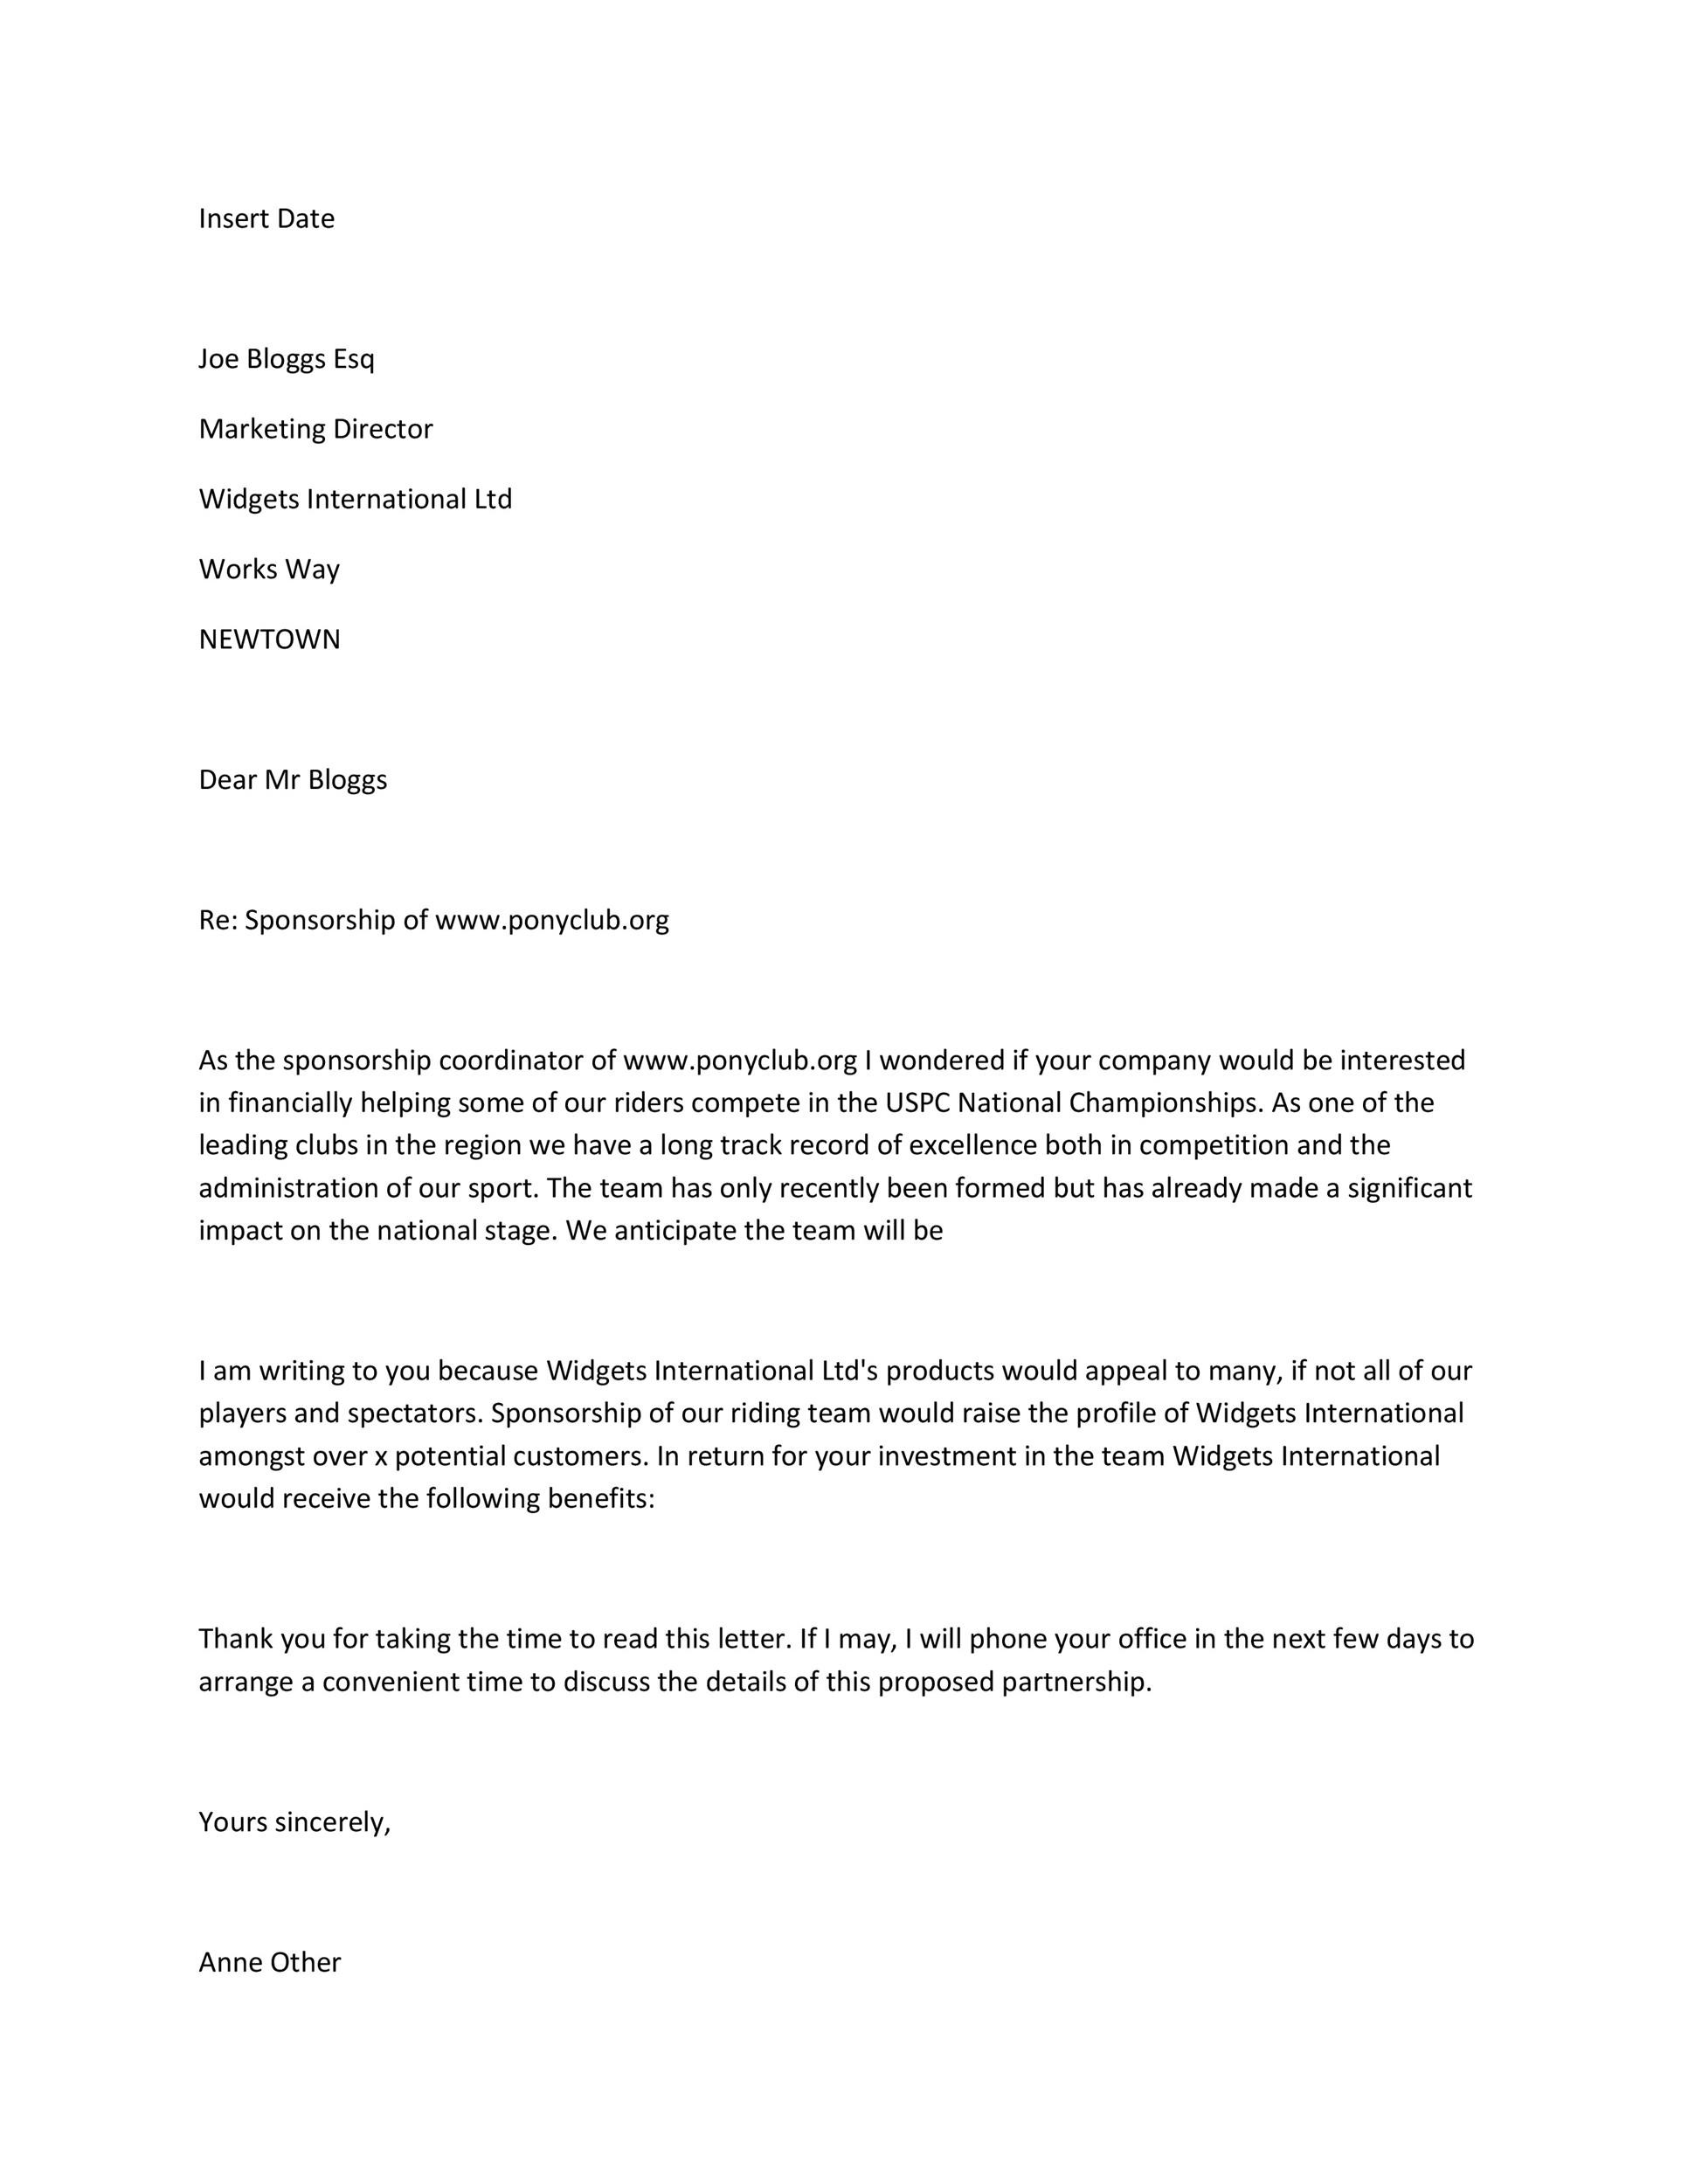 Request For Sponsorship Sample Letter | Docoments Ojazlink